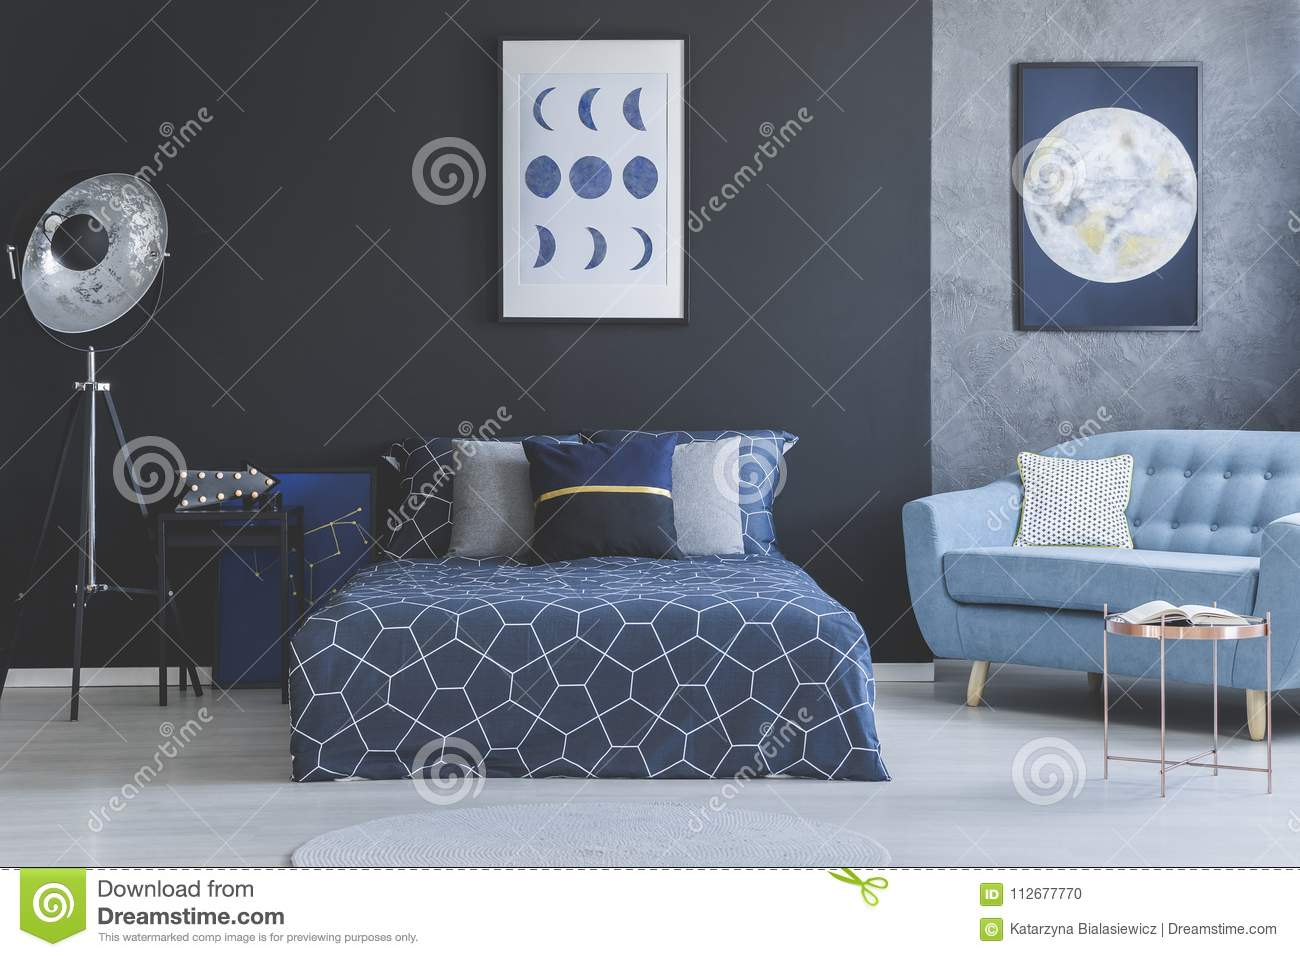 Picture of: Blue Sofa In Bedroom Interior Stock Photo Image Of Industrial Gallery 112677770